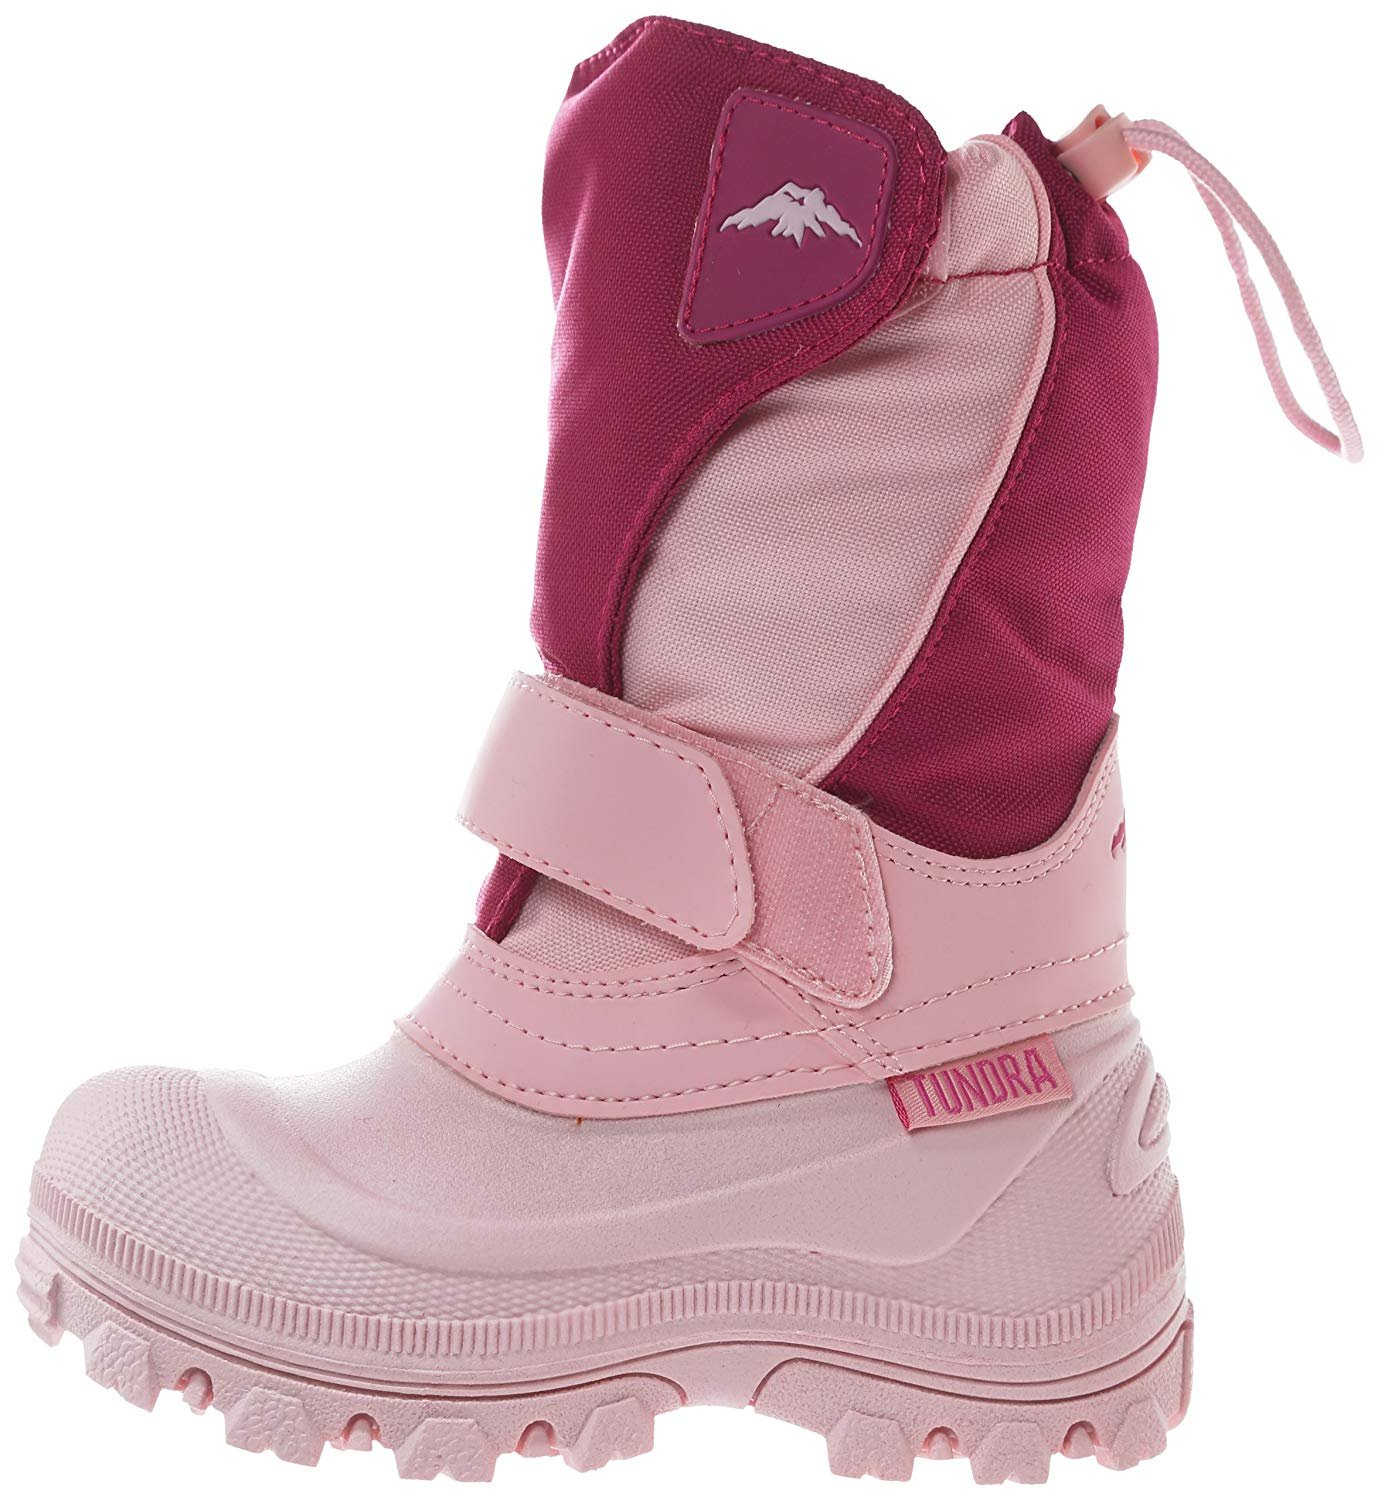 Tundra Boots Toddler Quebec Wide - Pink/Fuchsia-8 W Tod, Pink/Fuchsia, 8 W Tod